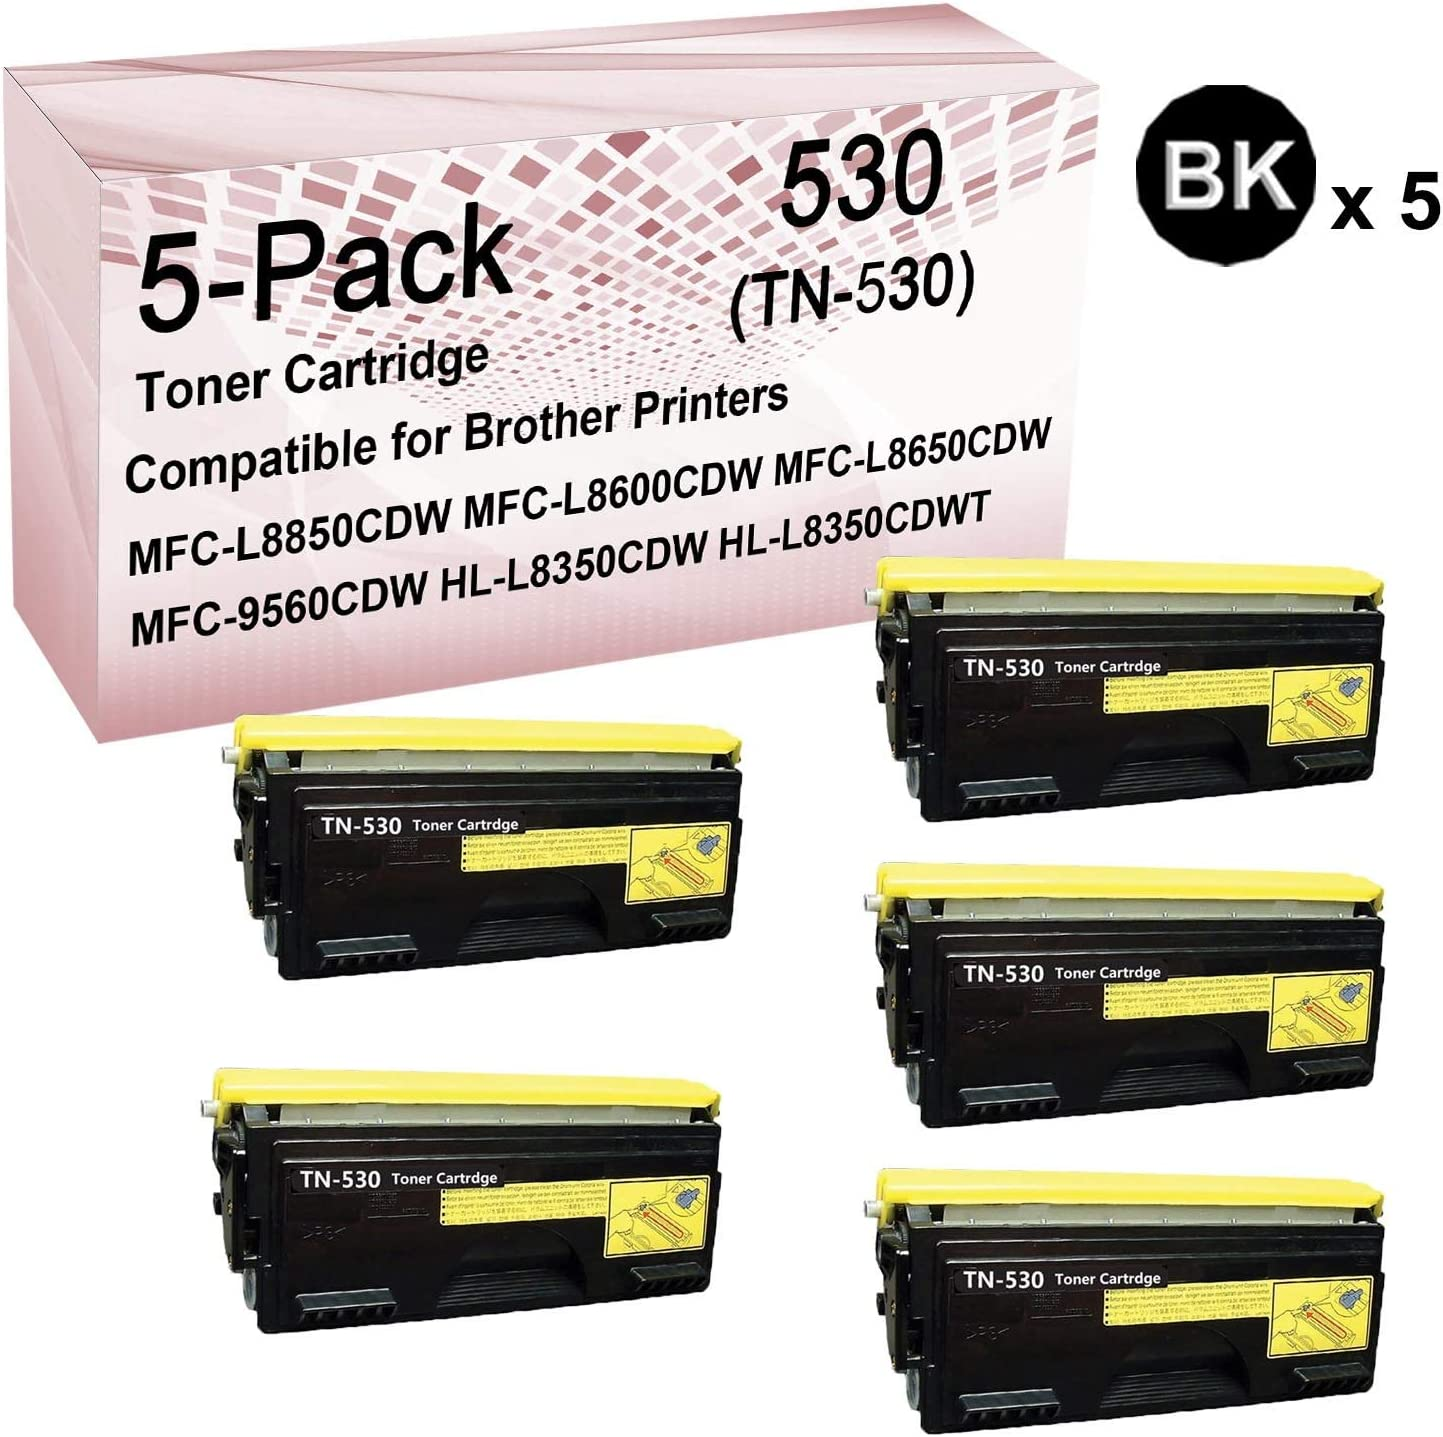 Compatible High Yield TN530 Toner Cartridge Use for Brother DCP-9270CDN DCP-L8400CDN DCP-L8450CDW Printer 5-Pack Black